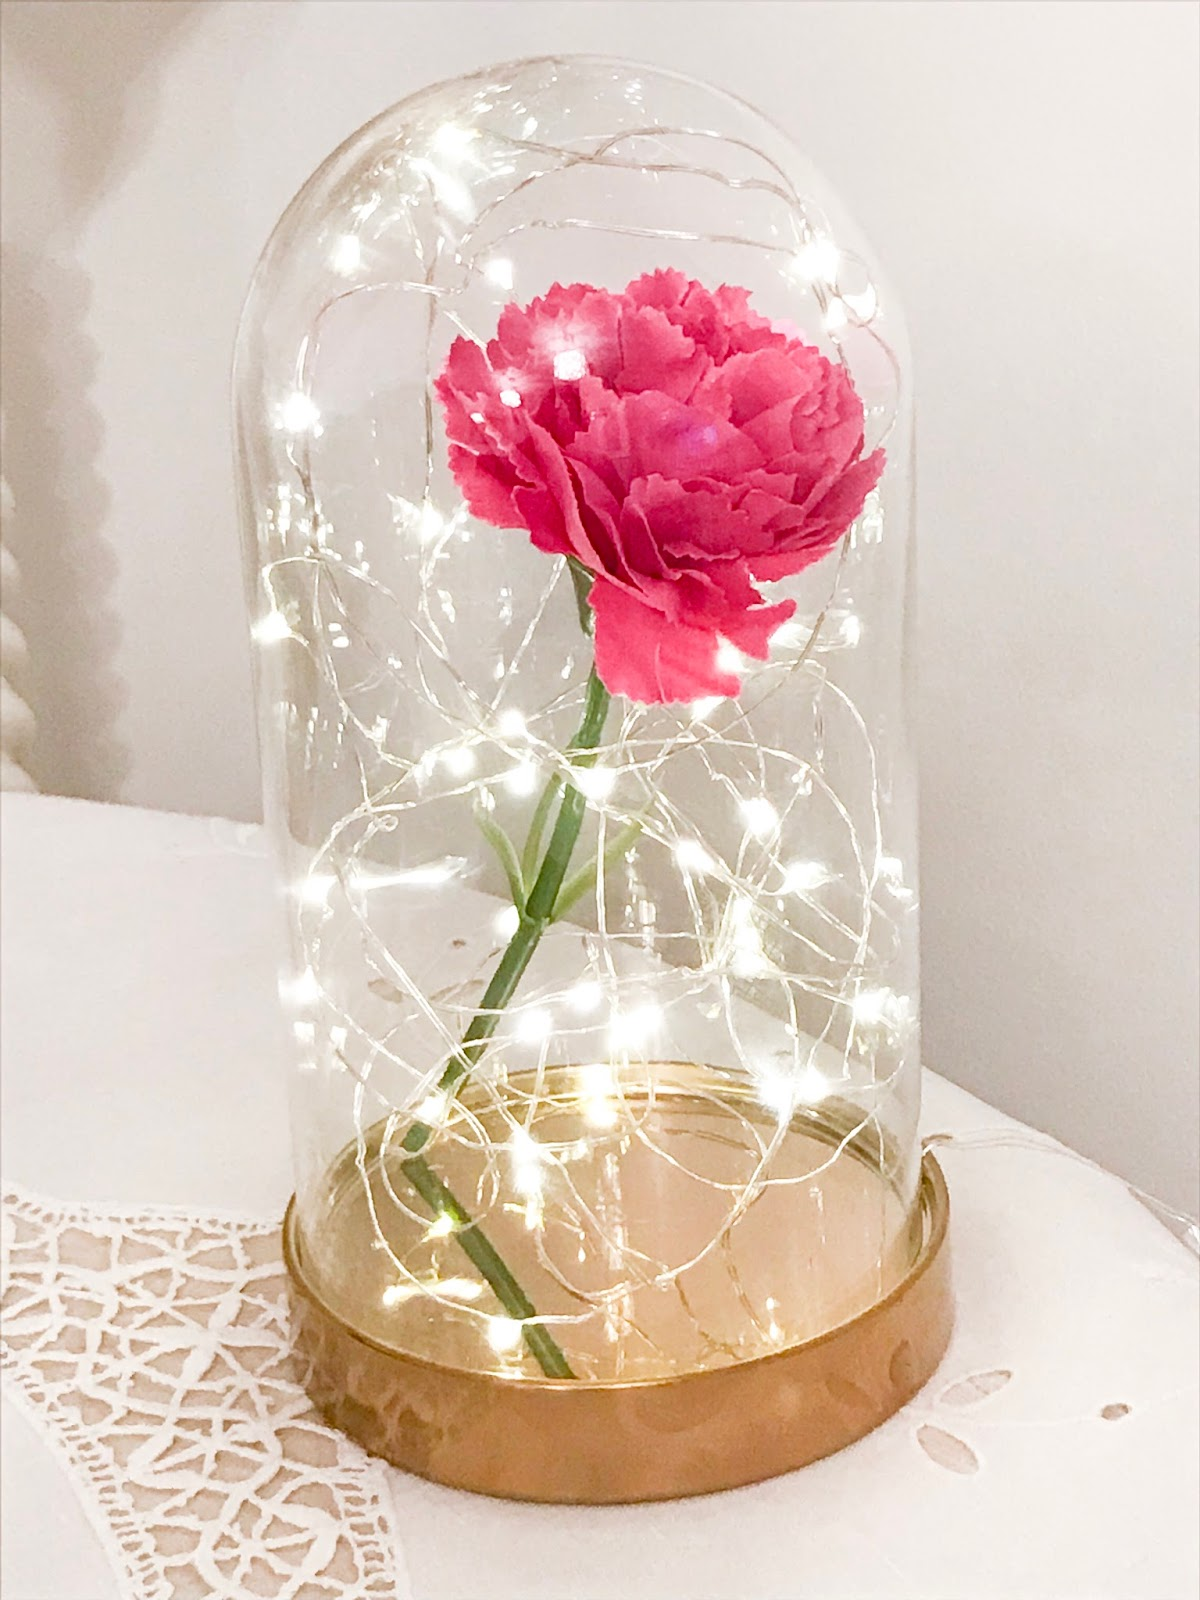 How to make diy beauty the beast inspired bell jar for under 10 how to make diy beauty the beast bell jar for under 10 izmirmasajfo Image collections